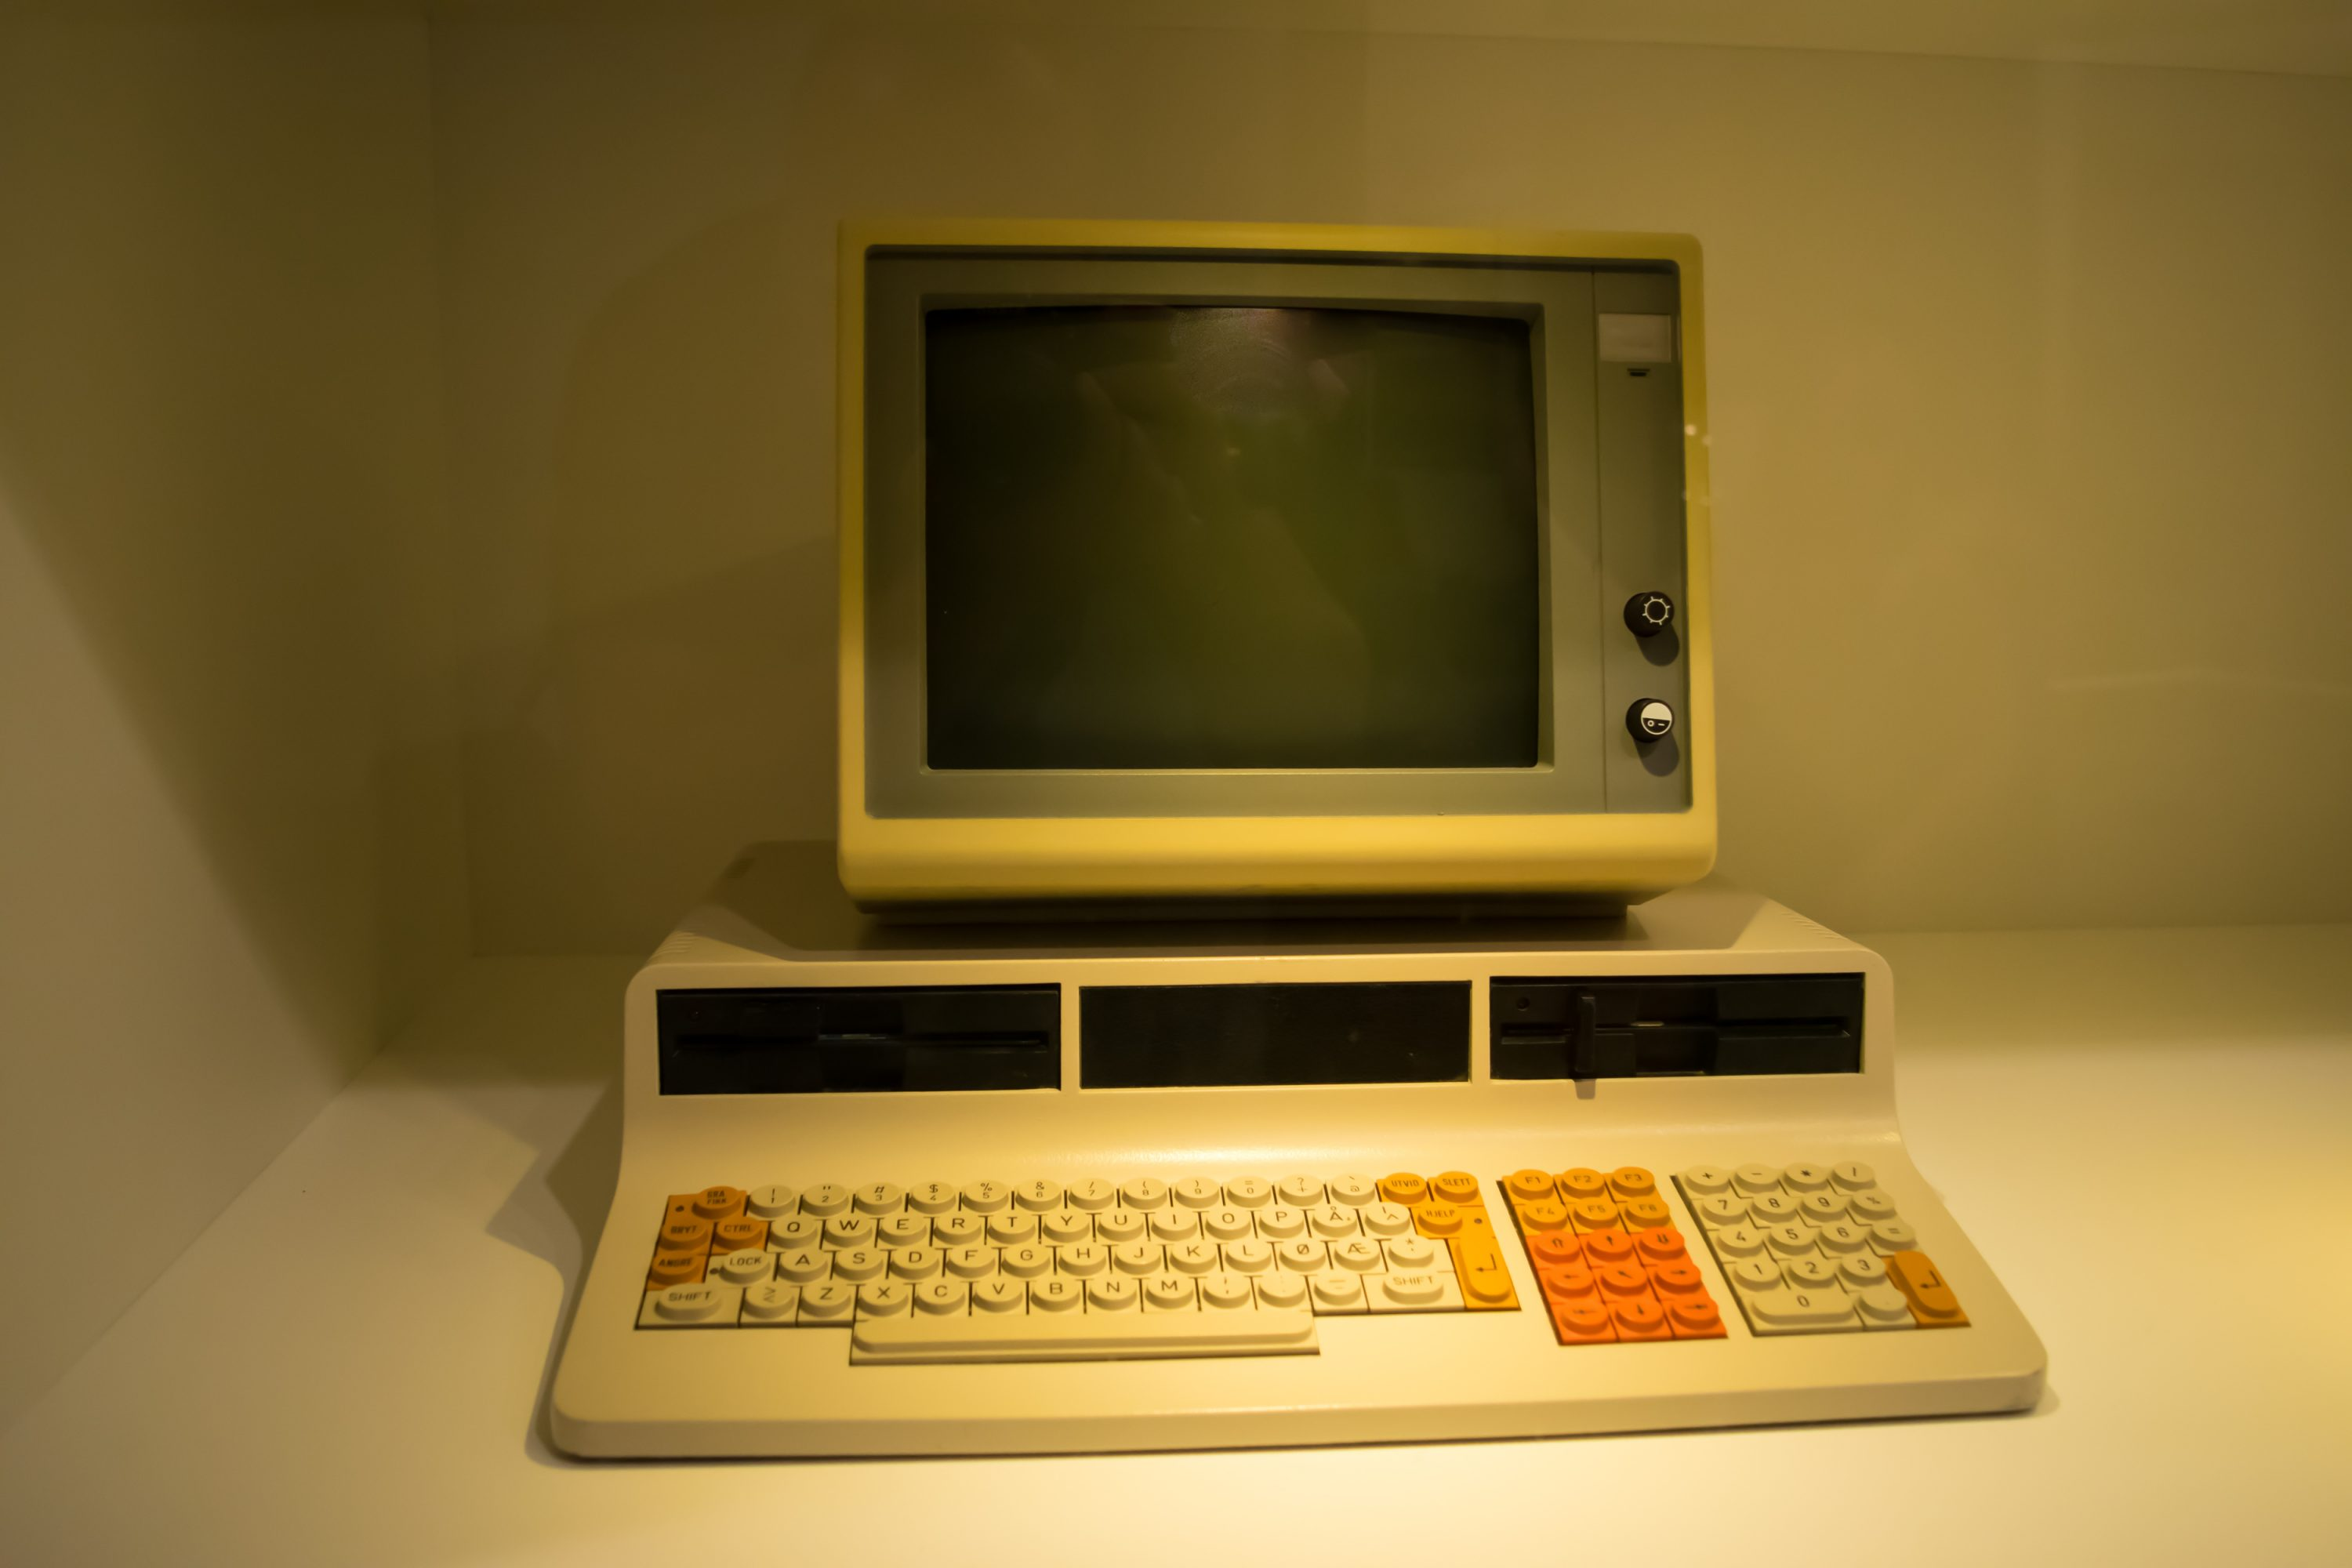 Who Invented the First Computer and When? We Investigate |First Computer